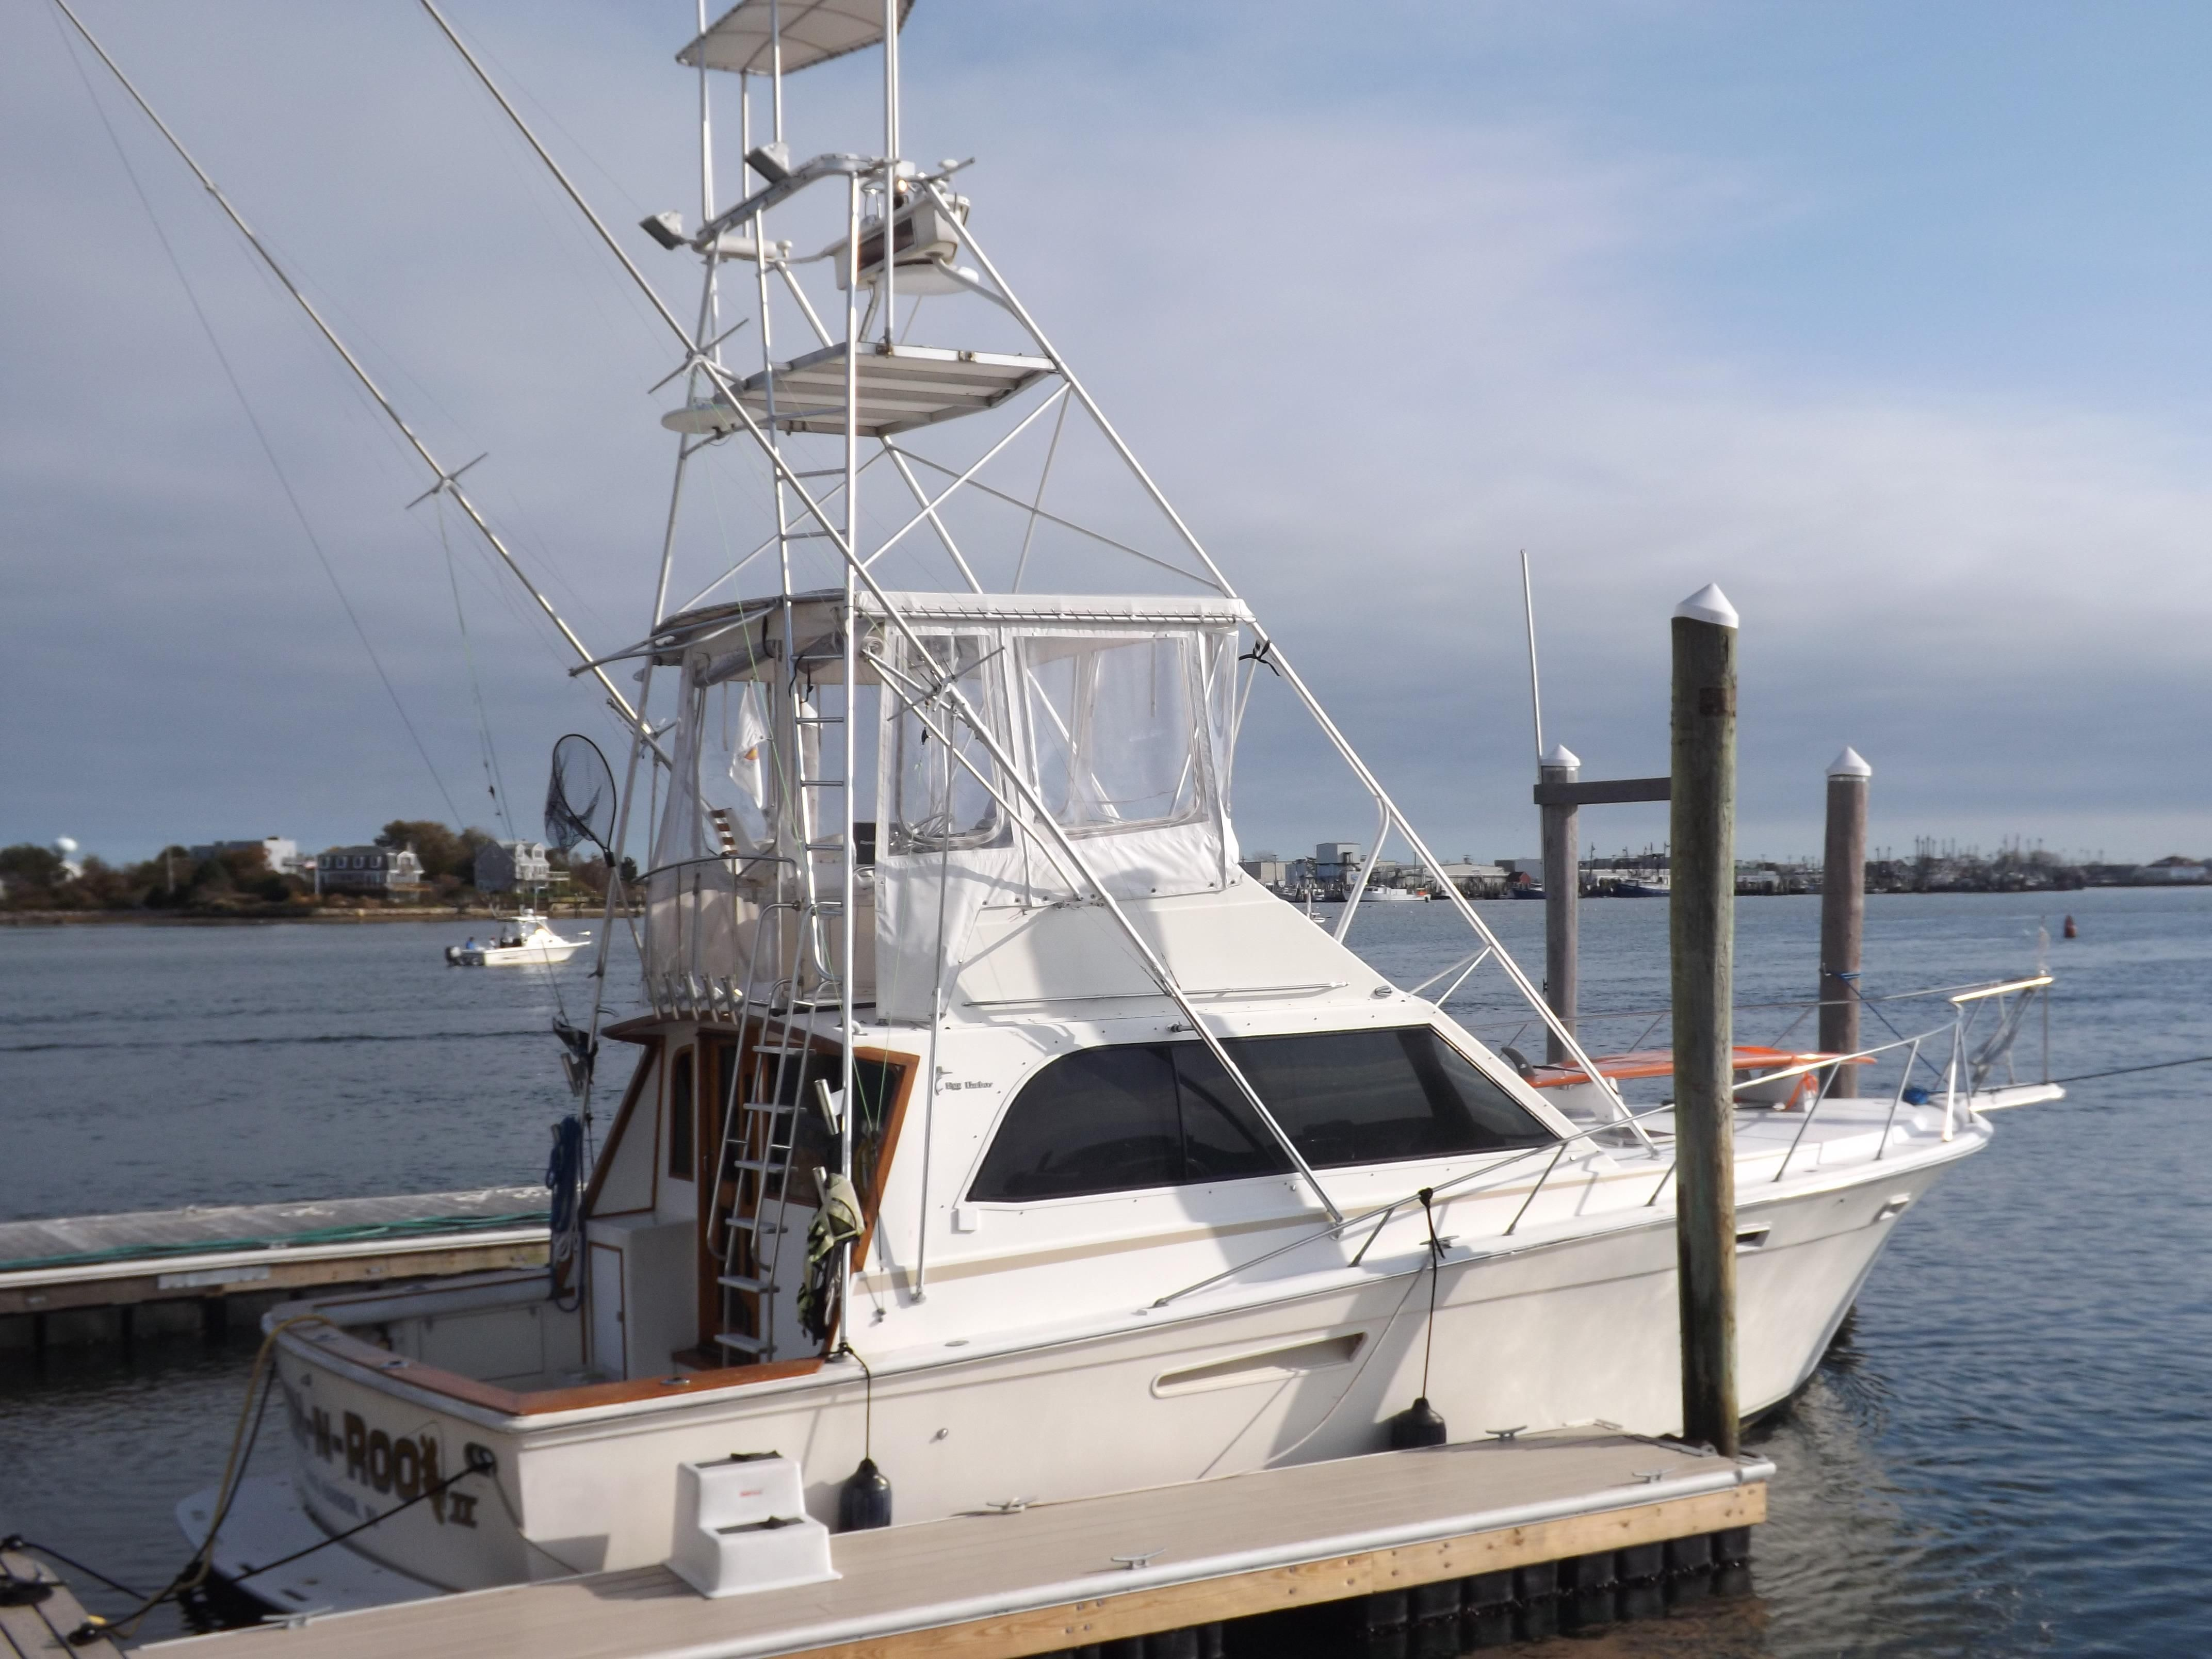 1985 egg harbor 37 convertible power boat for sale www for Sailboat outboard motor size calculator